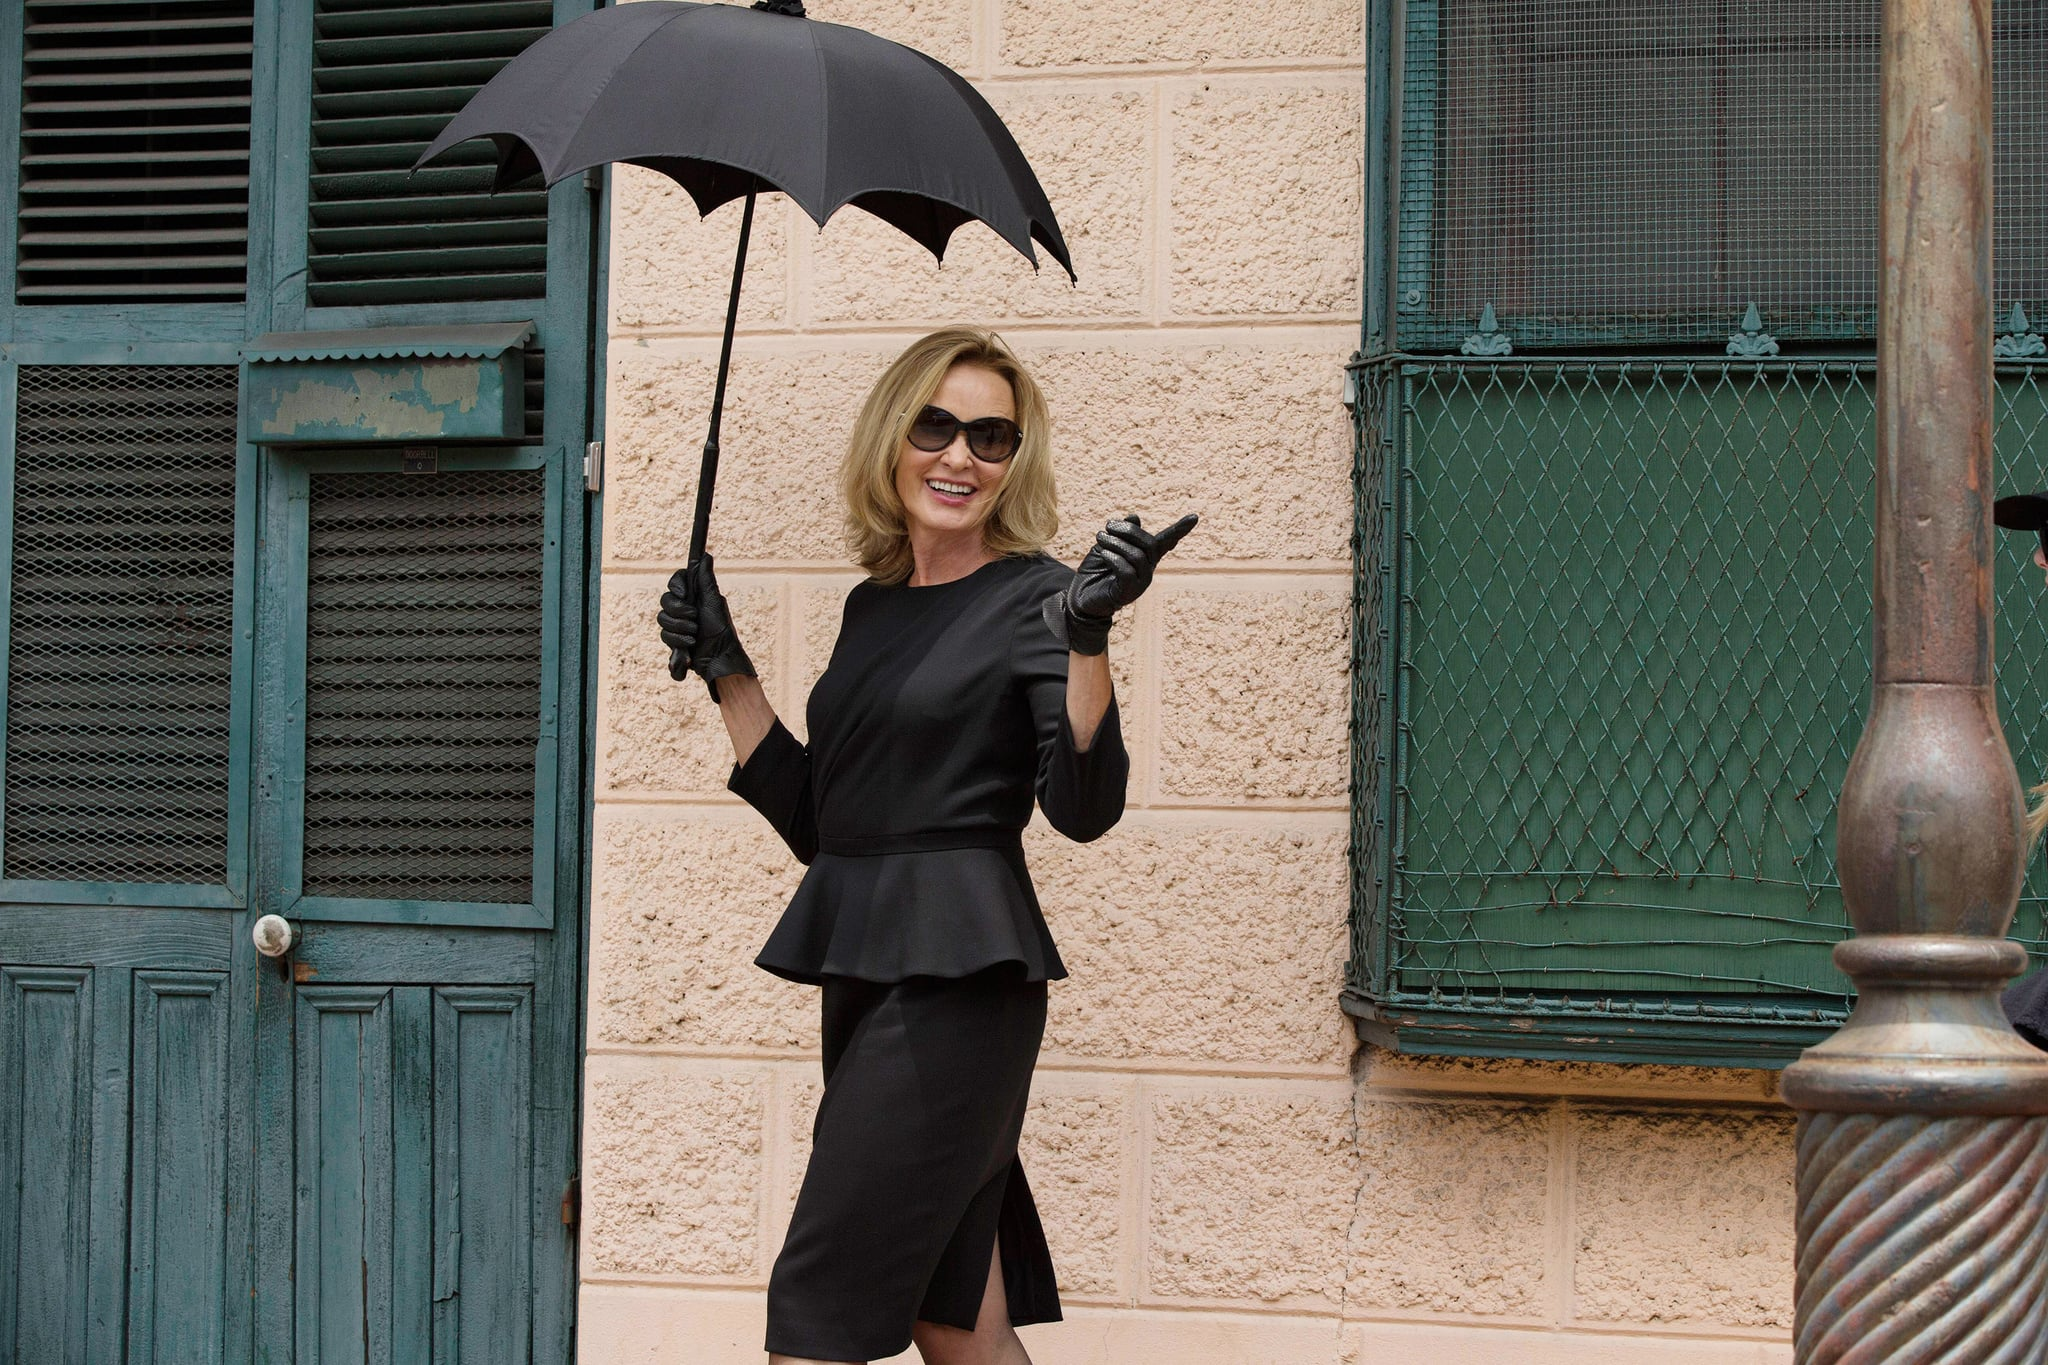 AMERICAN HORROR STORY: COVEN, Jessica Lange in 'Bitchcraft' (Season 3, Episode 1, aired October 9, 2013), 2011-, ph: Michele K. Short/FX Networks/courtesy Everett Collection